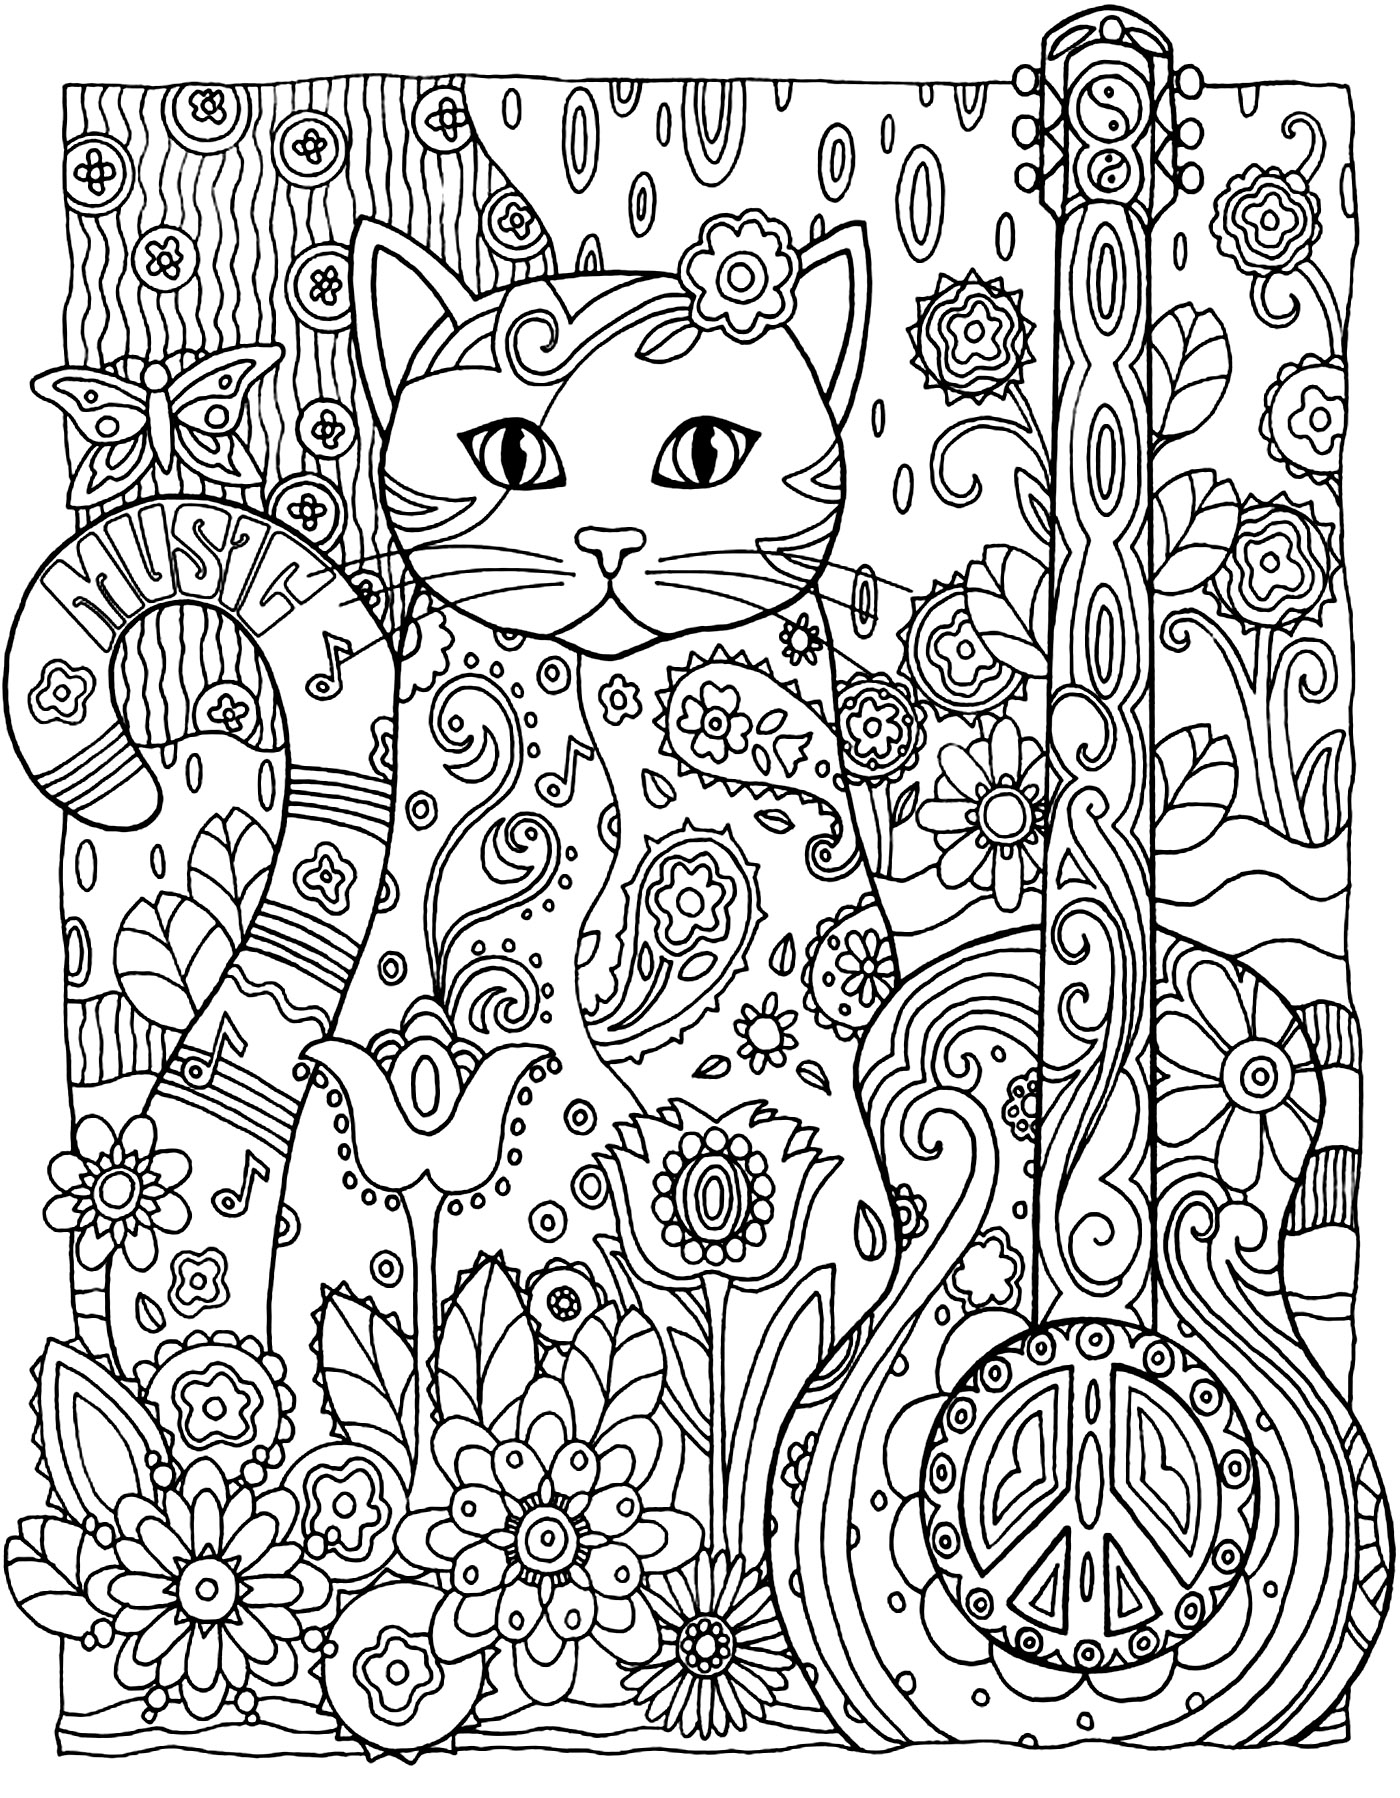 Cat to print : Cat & guitar - Cats Kids Coloring Pages